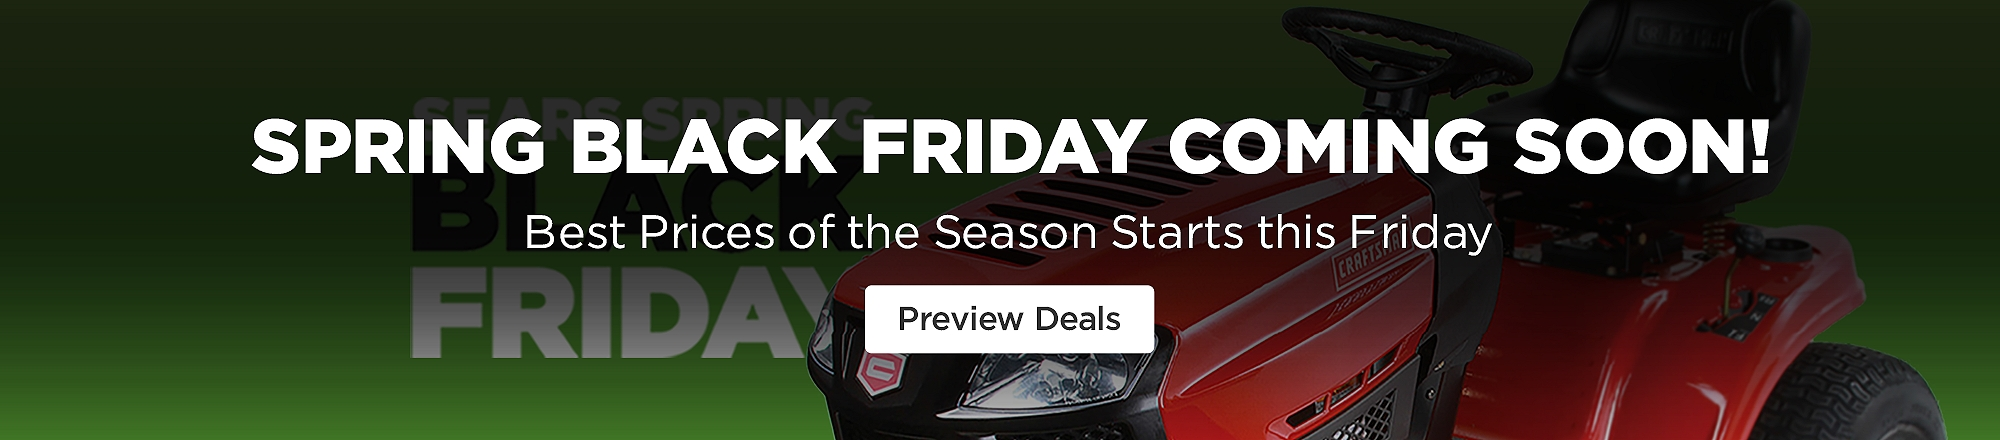 Sears Spring Black Friday Deals Coming Soon with preview